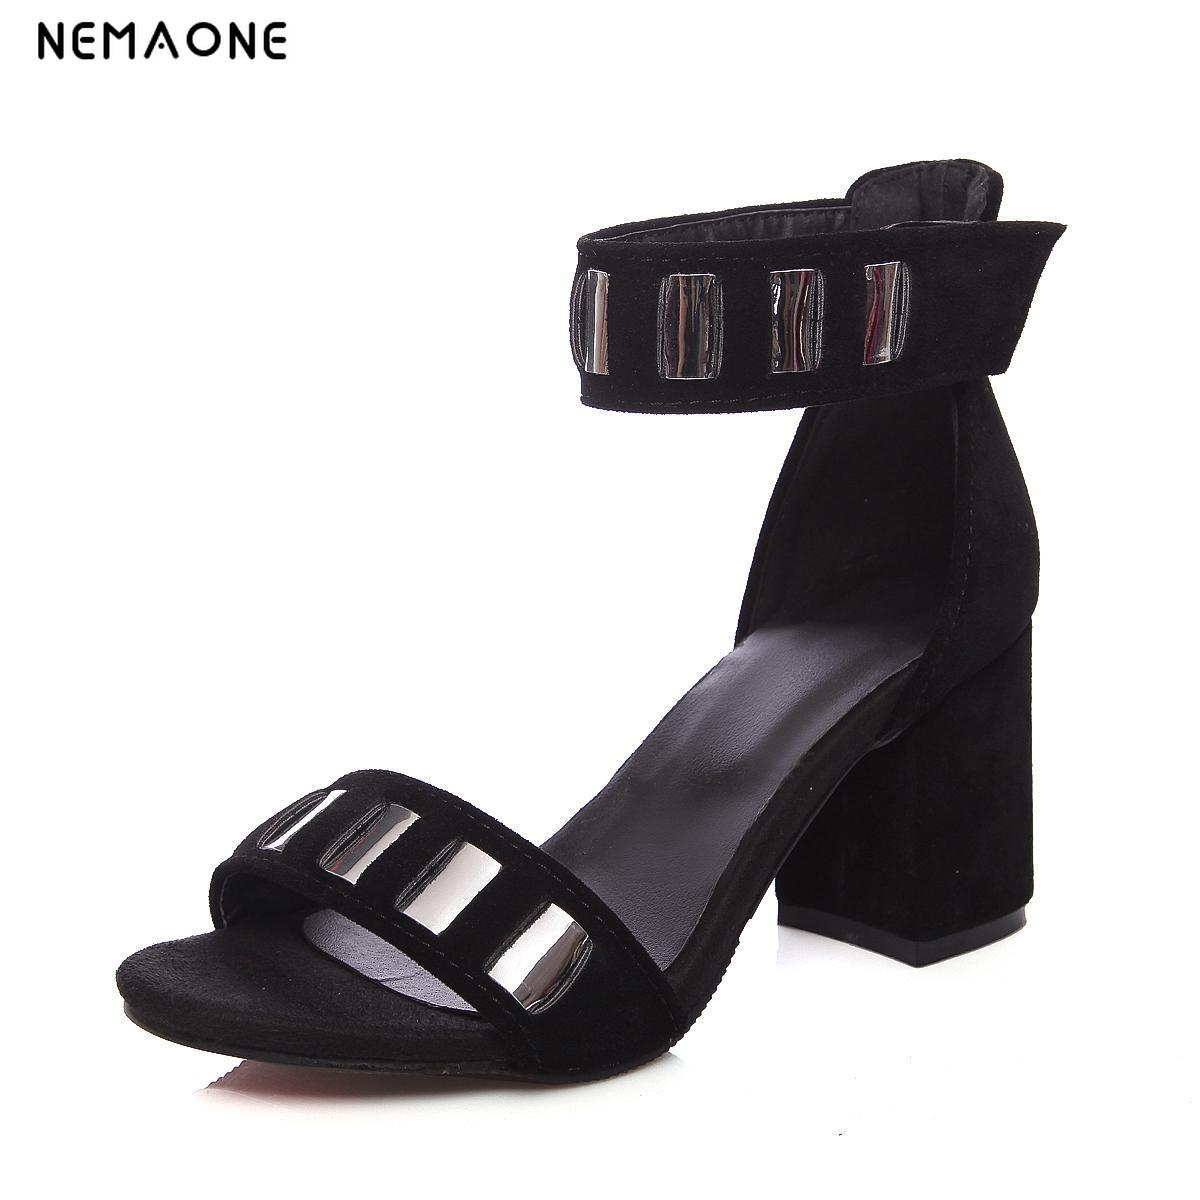 NEMAONE 2017 New women shoes sexy high heels sandals ankle strap women sandals summer shoes woman open toe ladies  size 34-43 new ankle strap open toe high heels sexy ladies shoe women summer gold silver black sequins leather sexy sandals shoes smybk 022